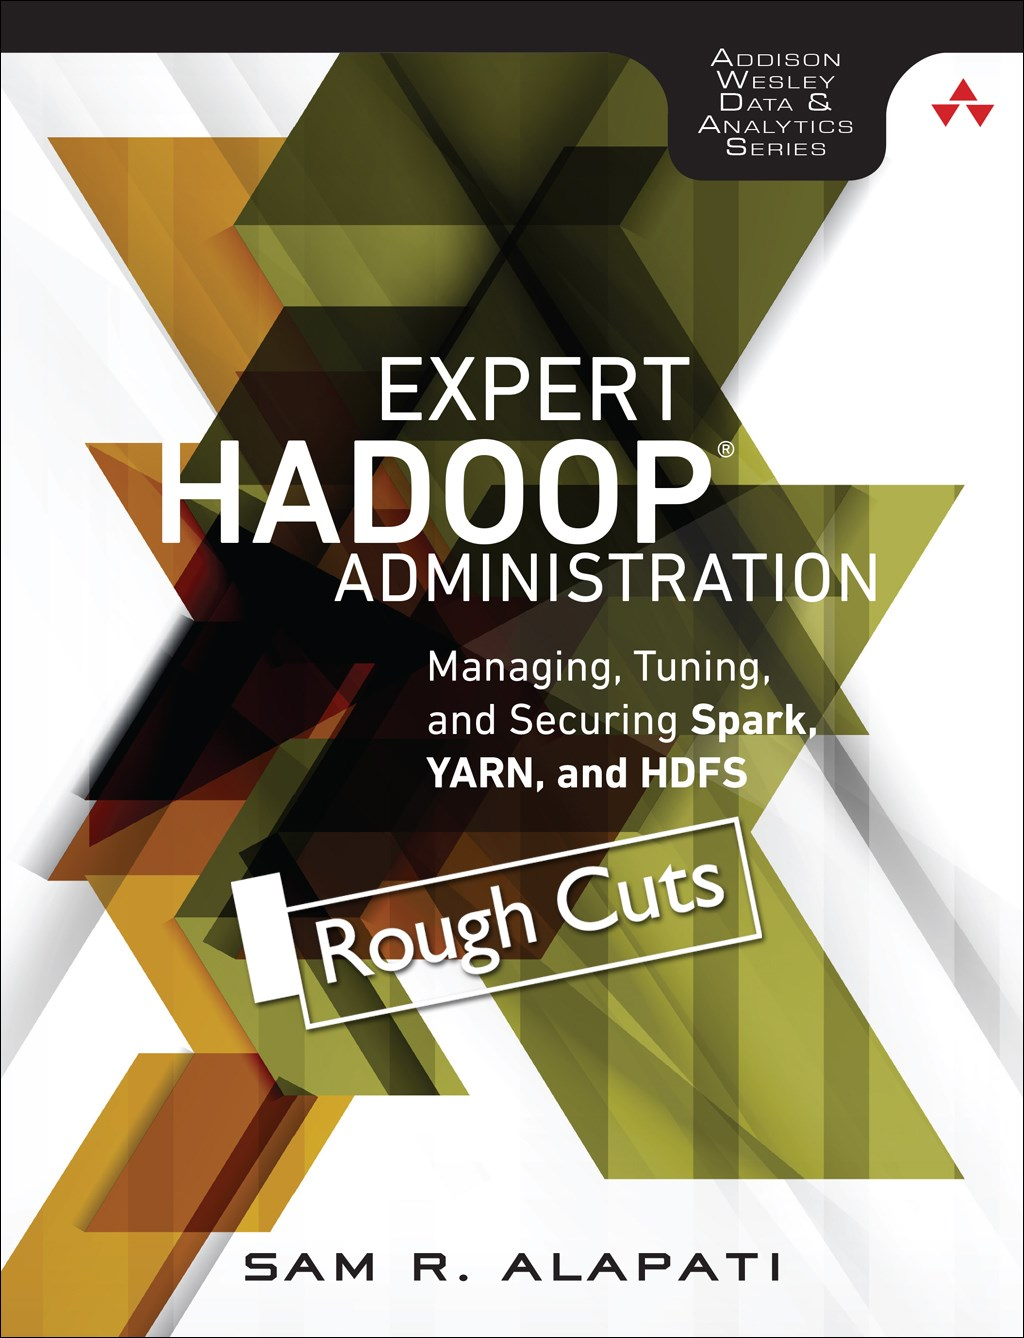 Expert Hadoop Administration: Managing, Tuning, and Securing Spark, YARN, and HDFS, Rough Cuts